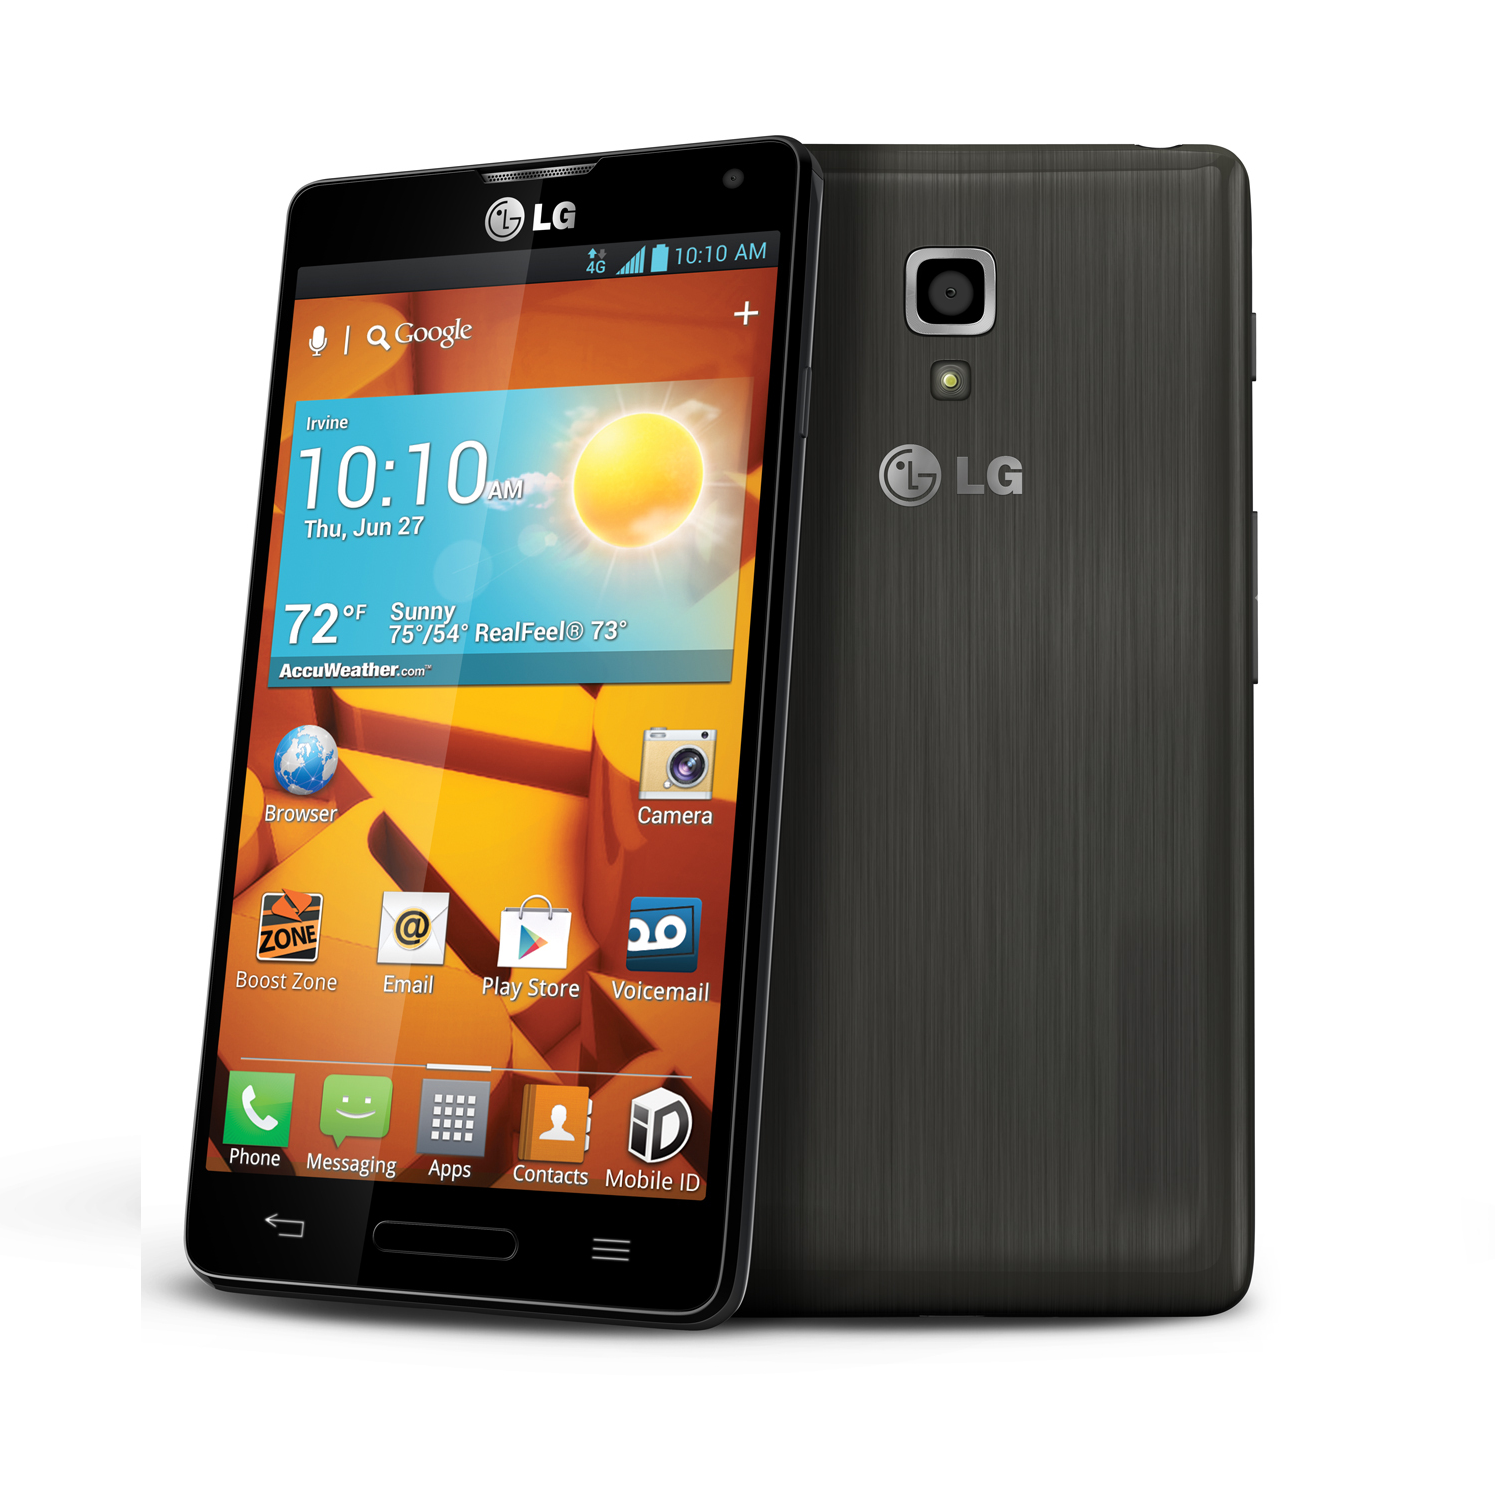 LG Optimus F7 LG870 WiFi GPS 4G LTE Android Phone Boost Mobile